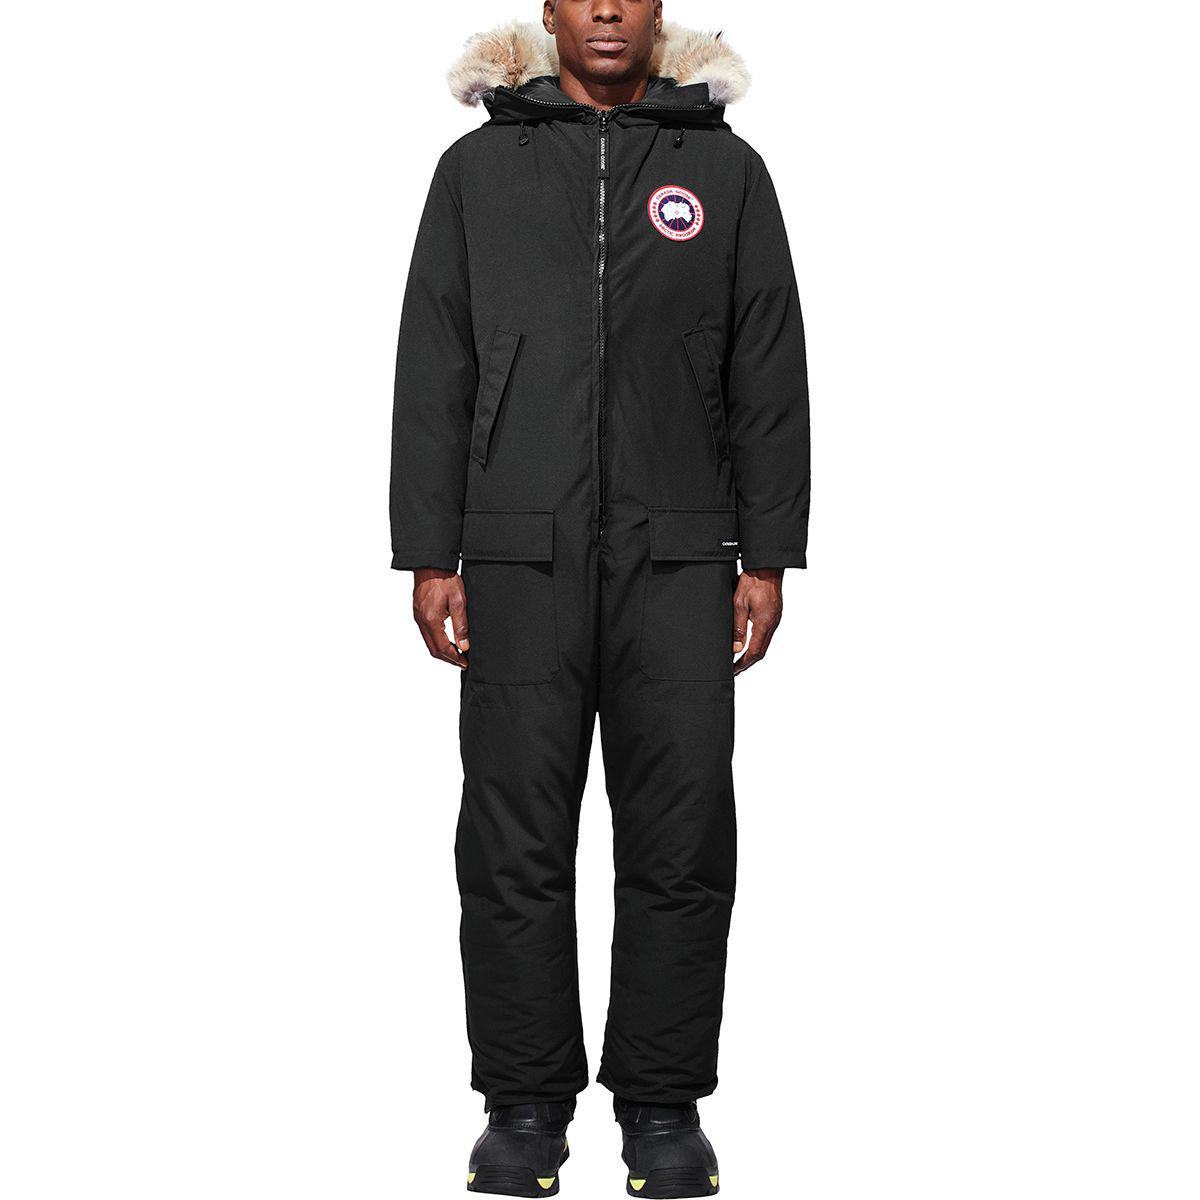 dd35dff7e87 Canada Goose - Black Arctic Rigger Insulated Coverall for Men - Lyst. View  fullscreen